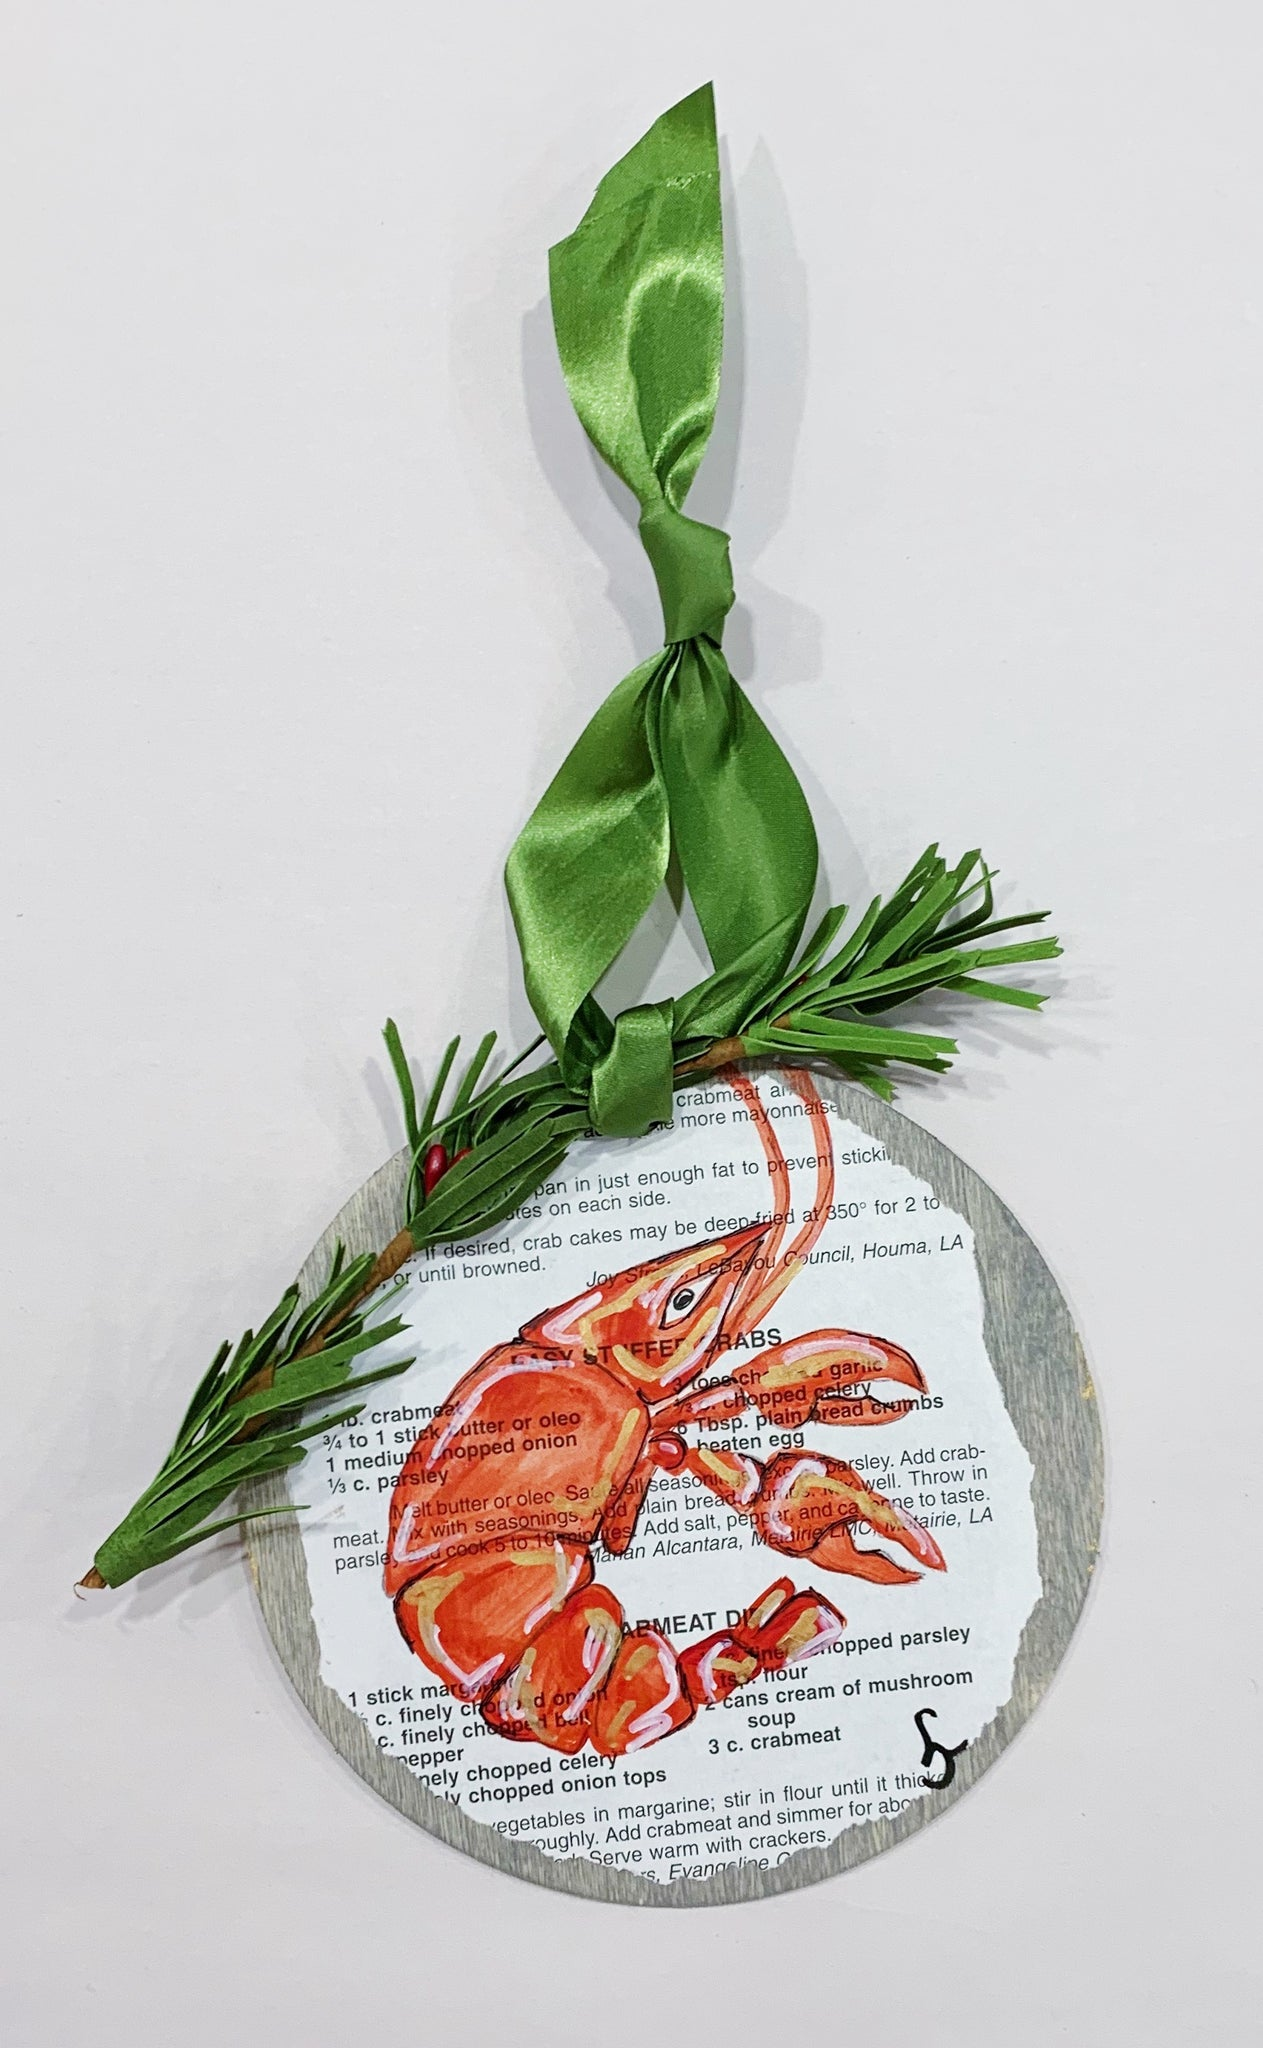 Crawfish Recipe Book Ornament - 318 Art and Garden